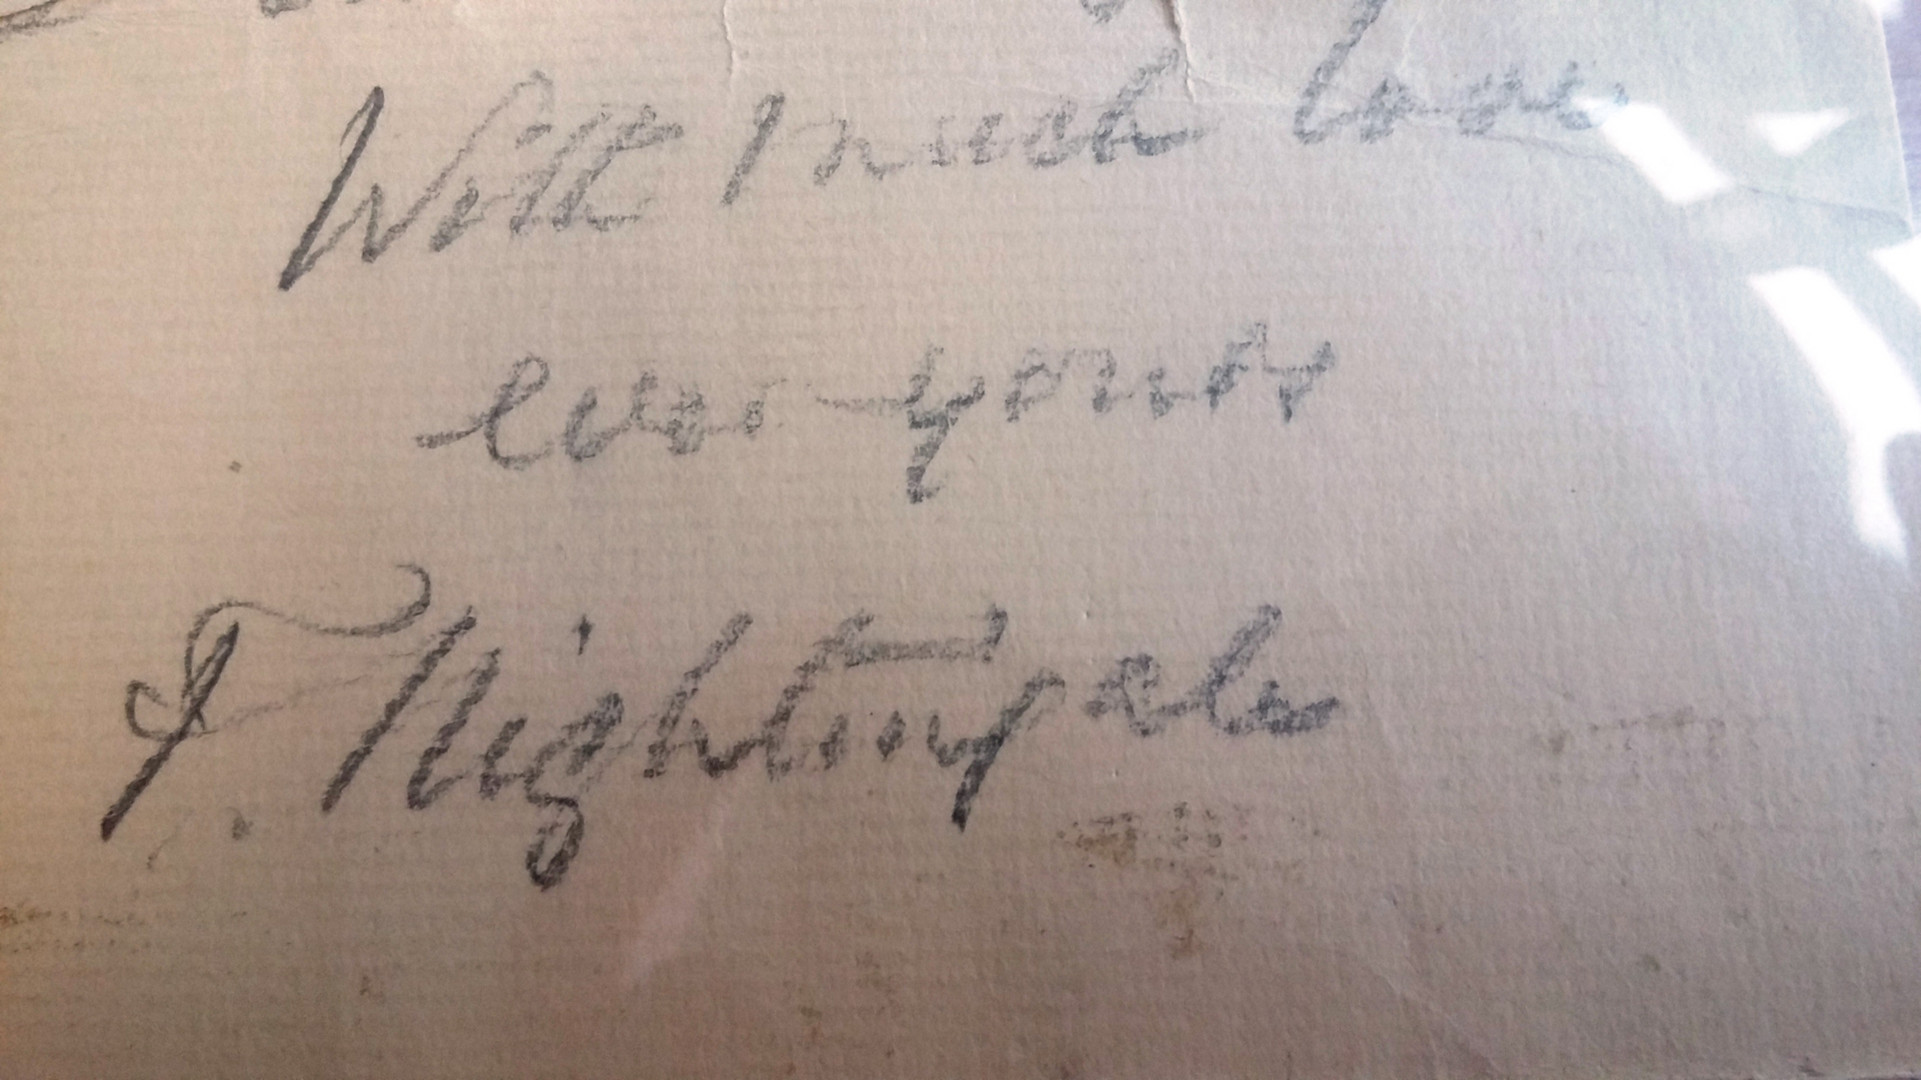 Florence Nightingale's Signature_edited.